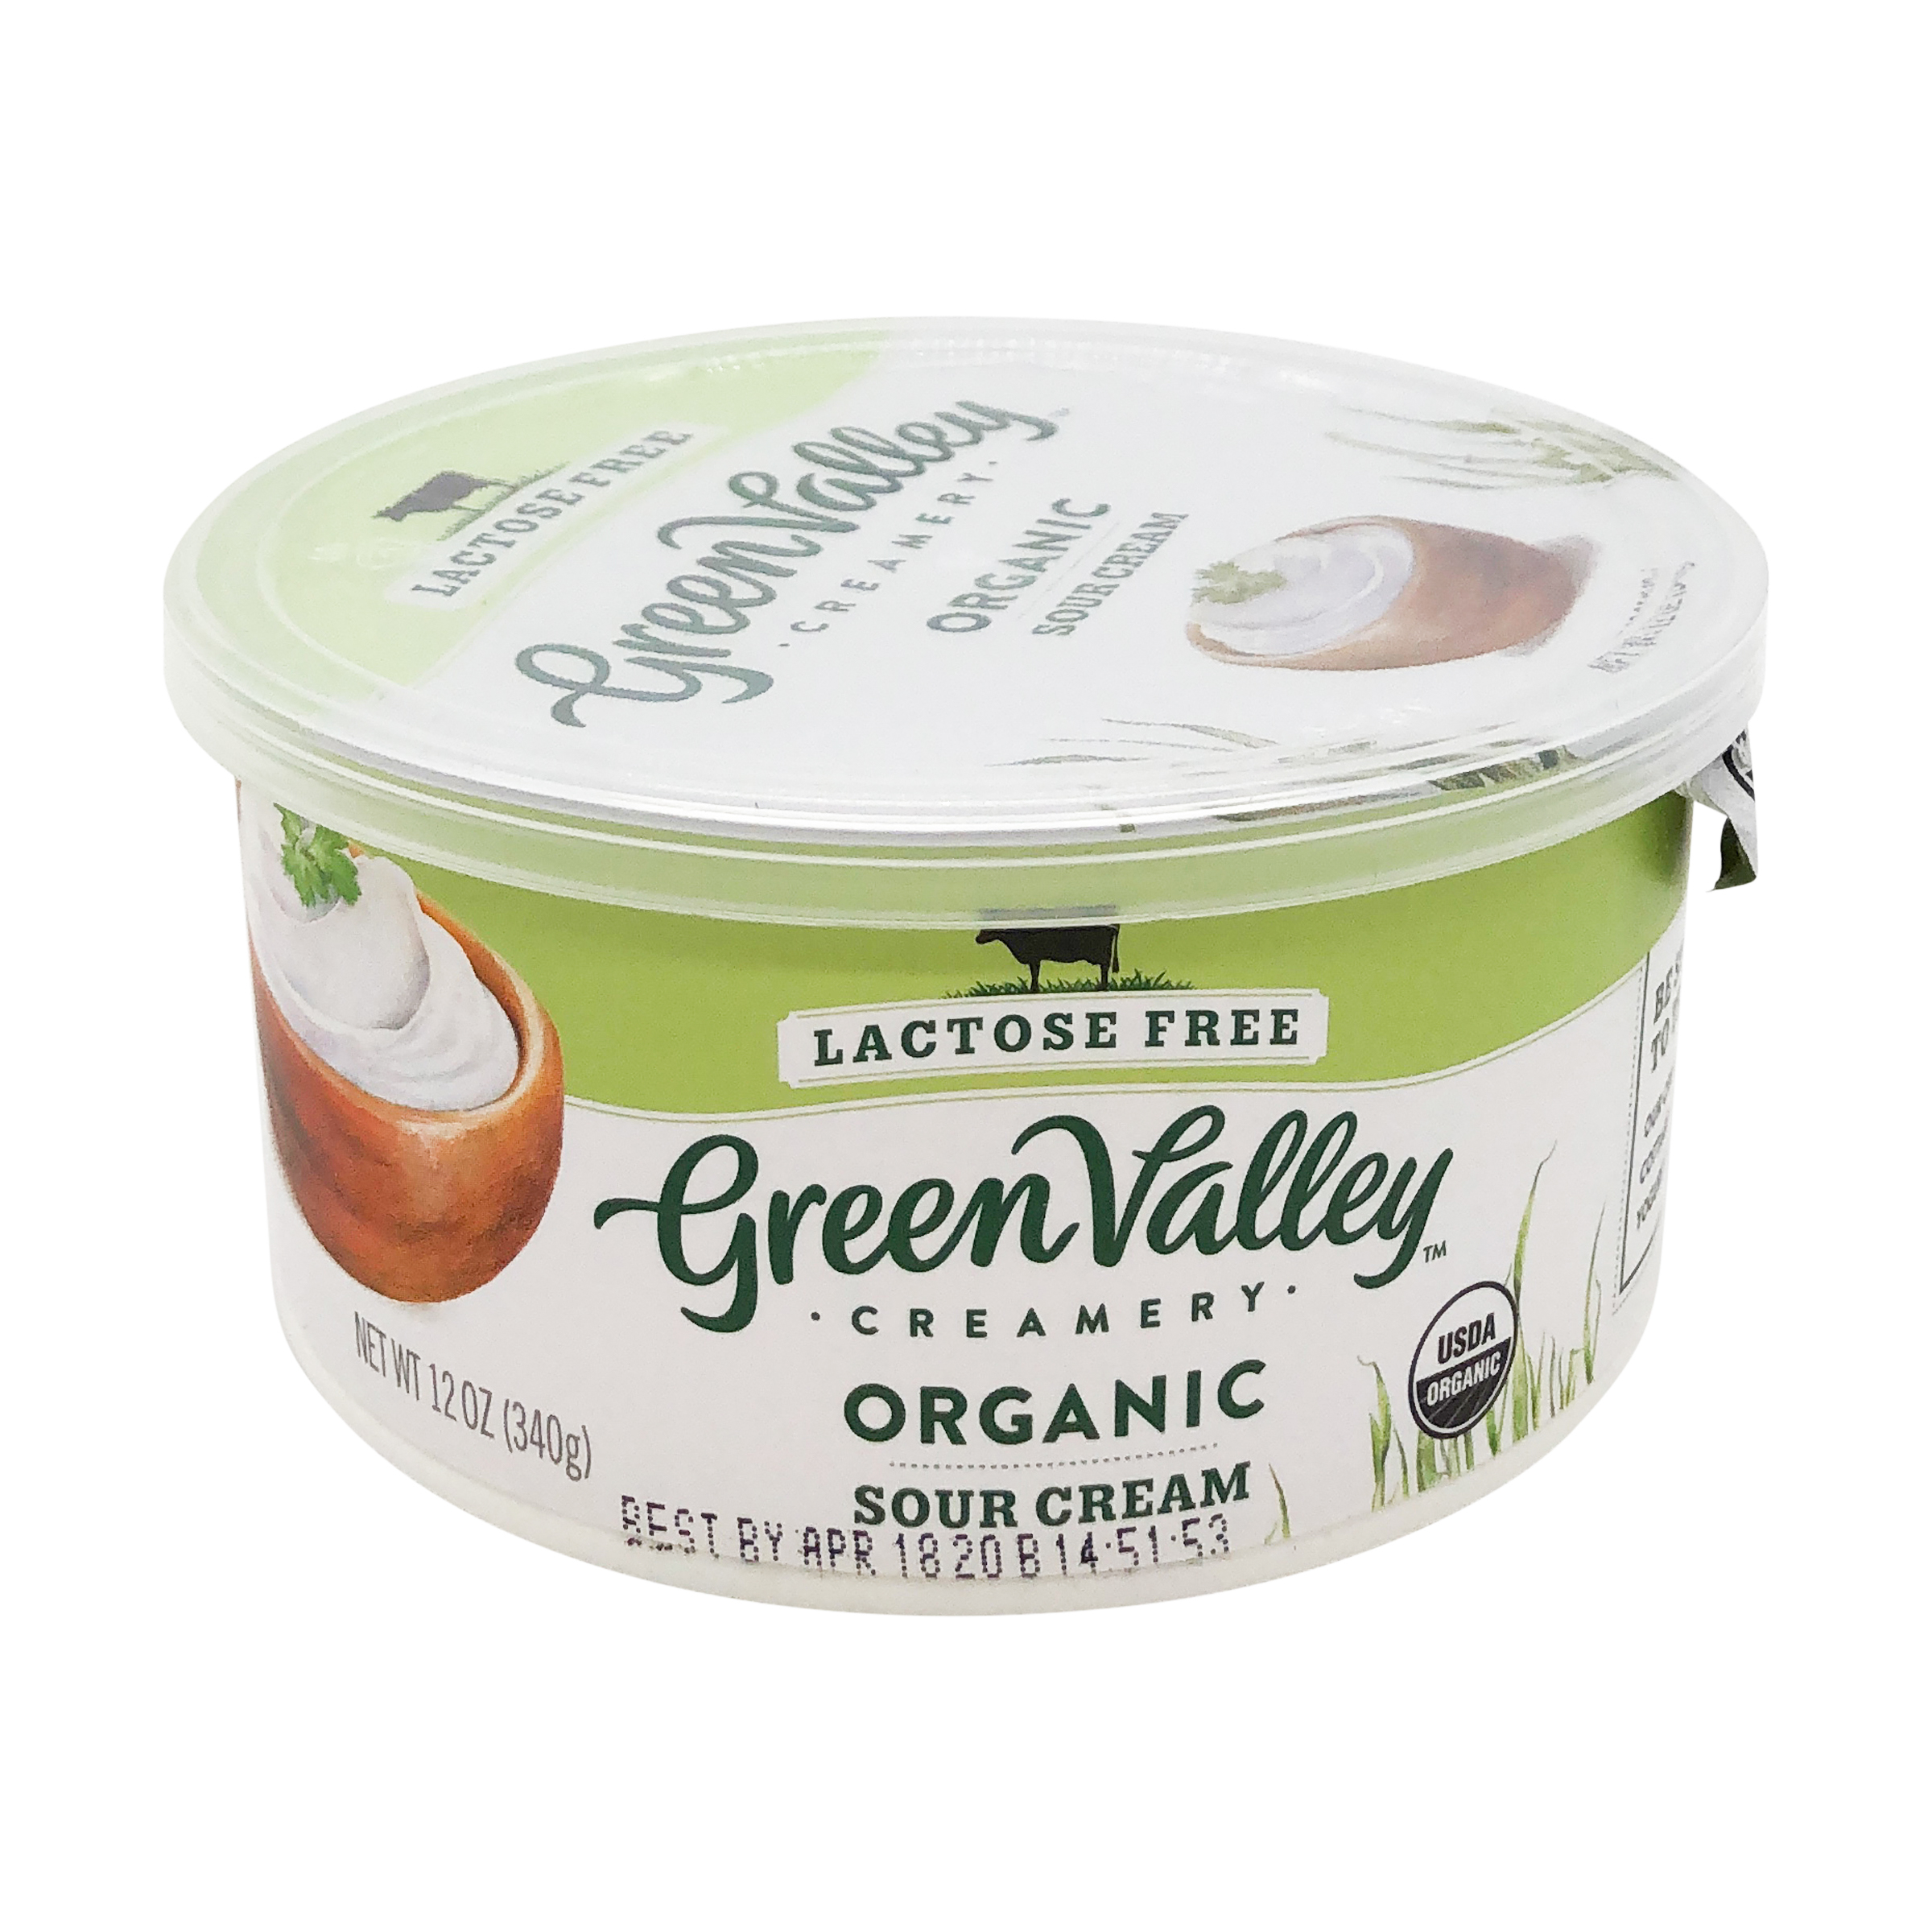 Lactose Free Sour Cream 12 Oz Green Valley Creamery Whole Foods Market